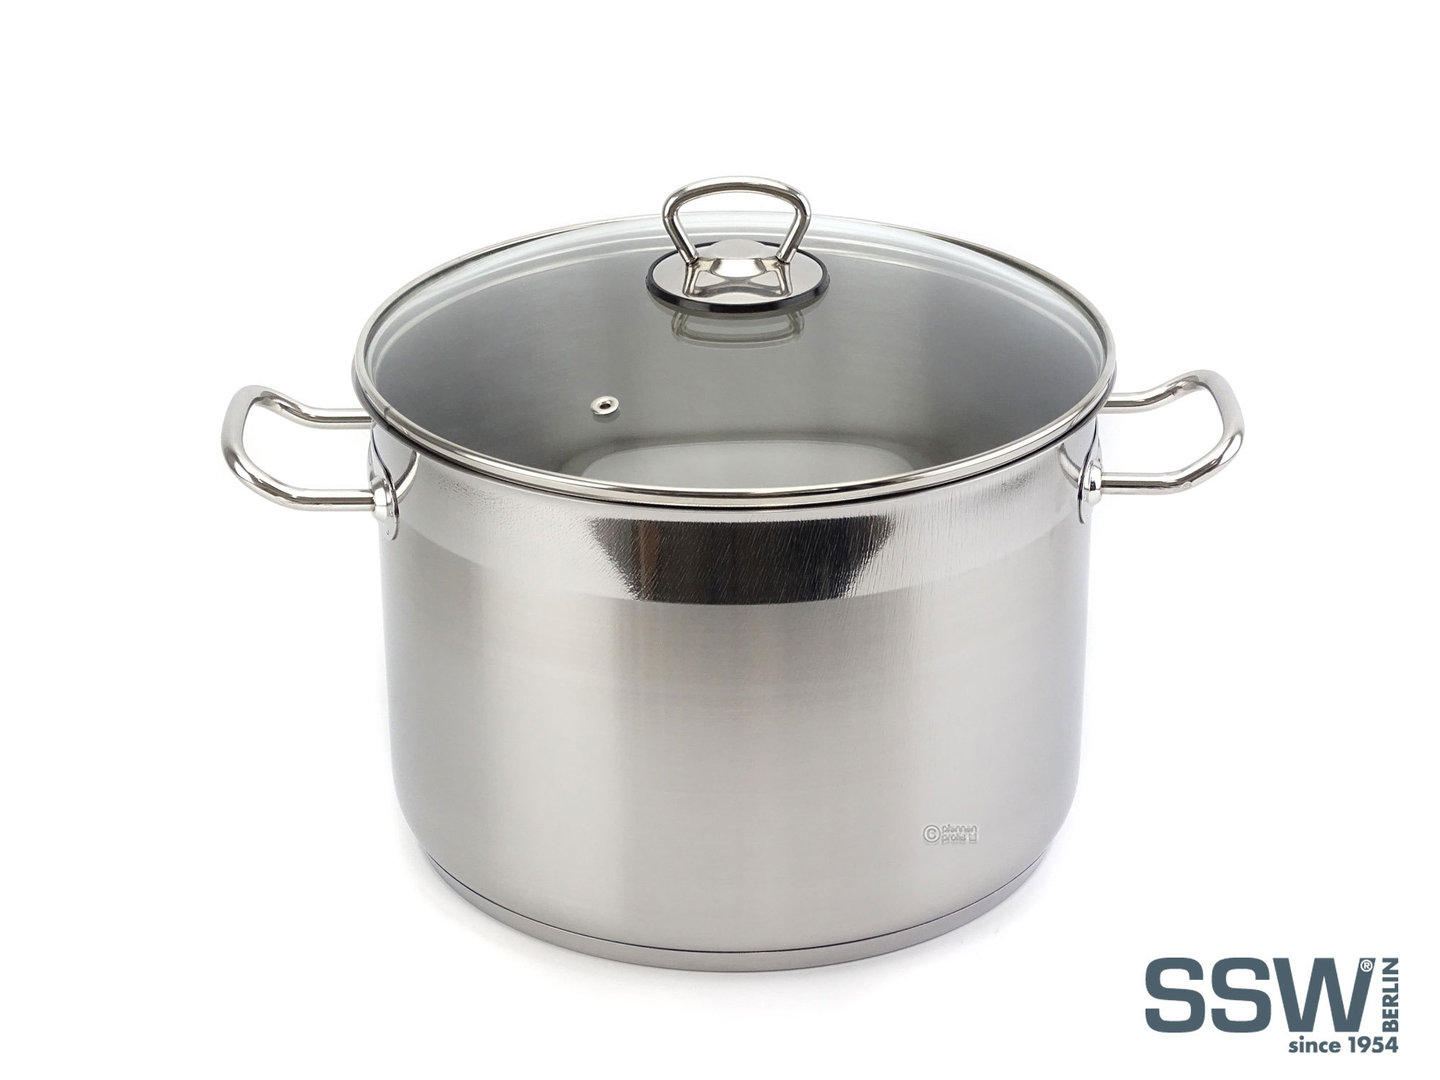 SSW stainless steel stockpot BIG 10 liter with glass lid 26 cm induction XL casserole